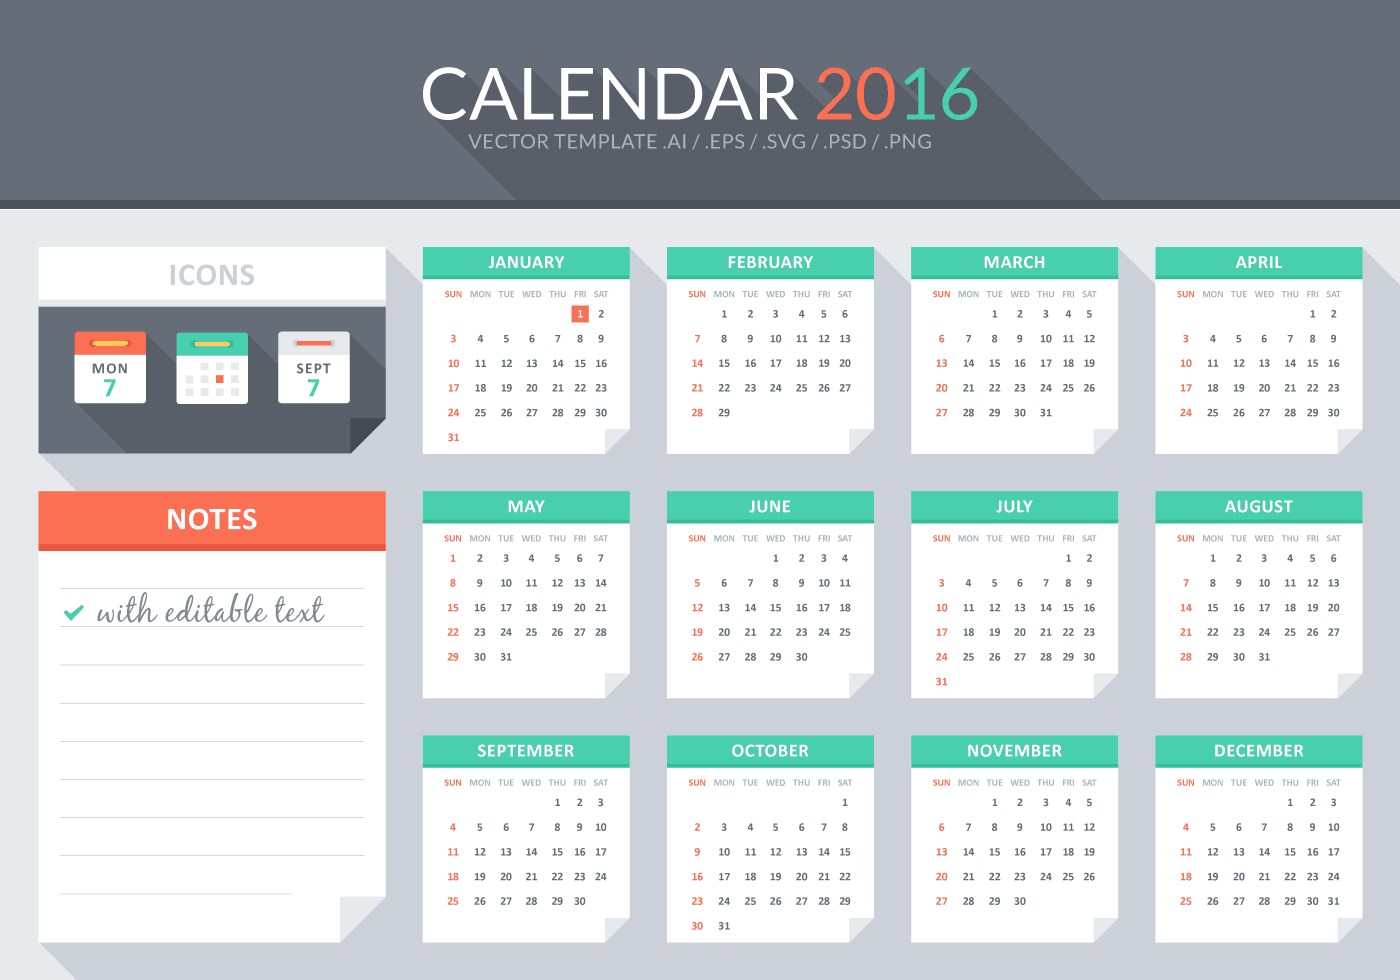 calendar-vector-template-preview (1)